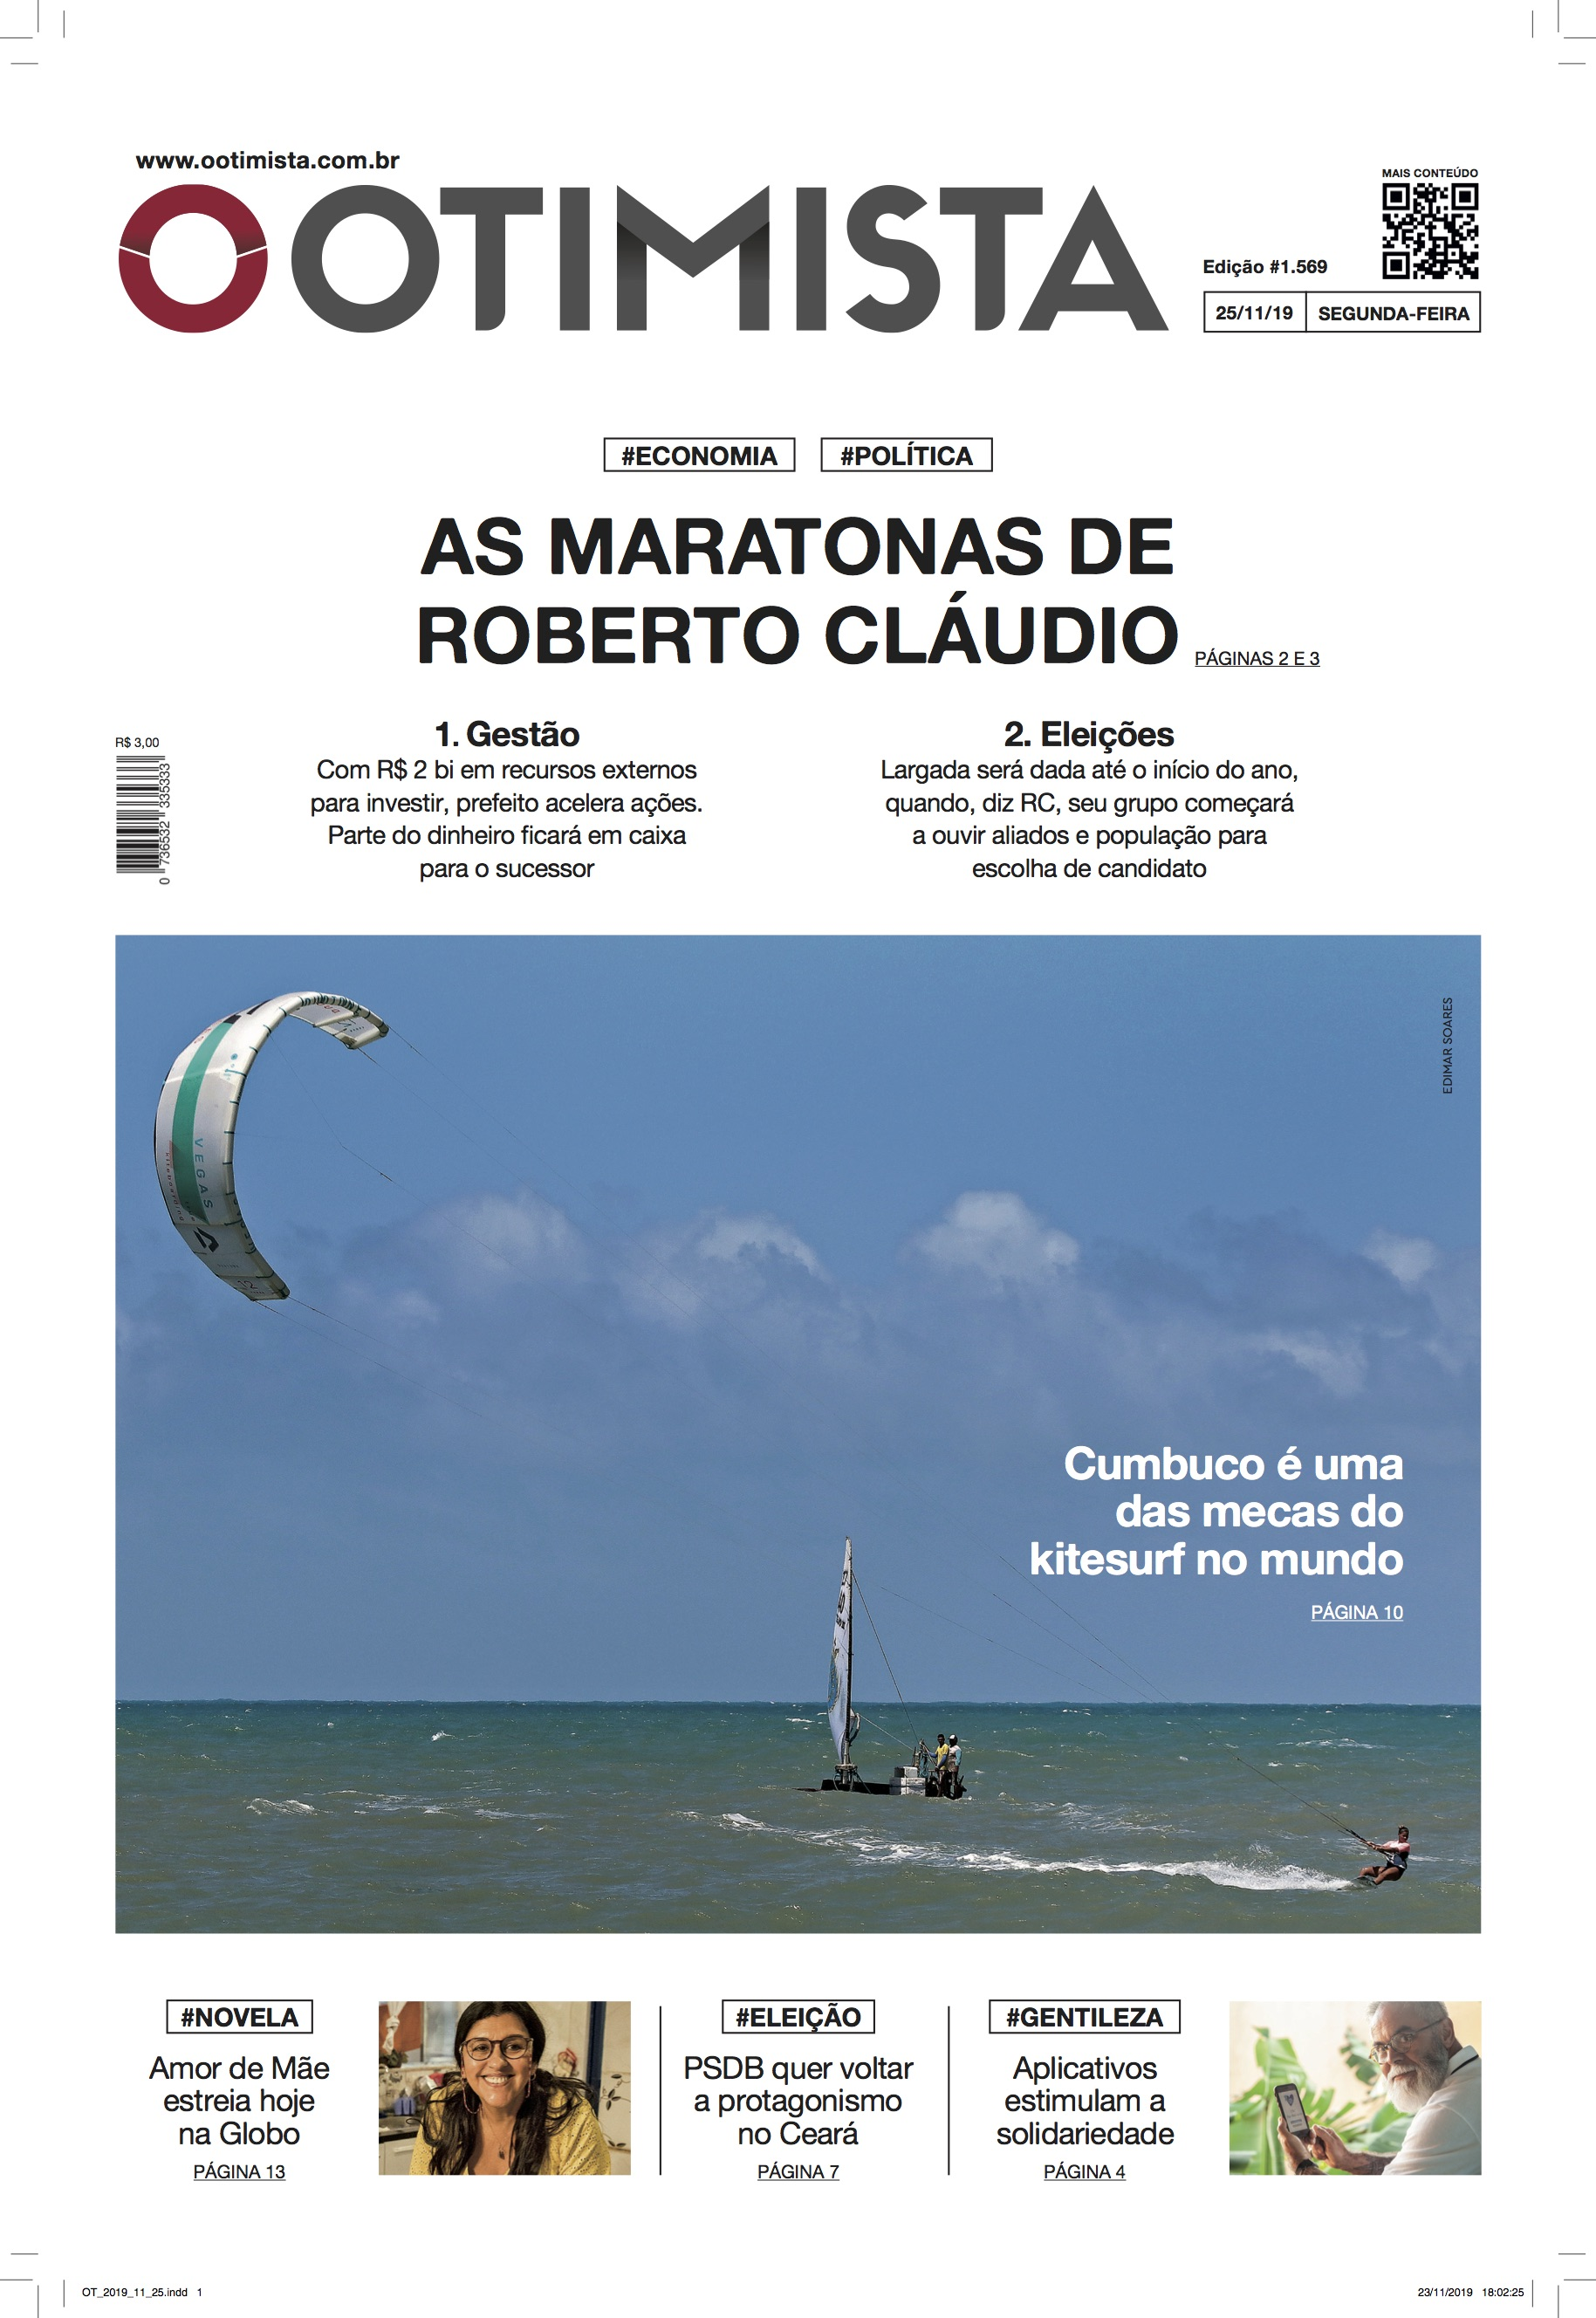 As maratonas de Roberto Cláudio